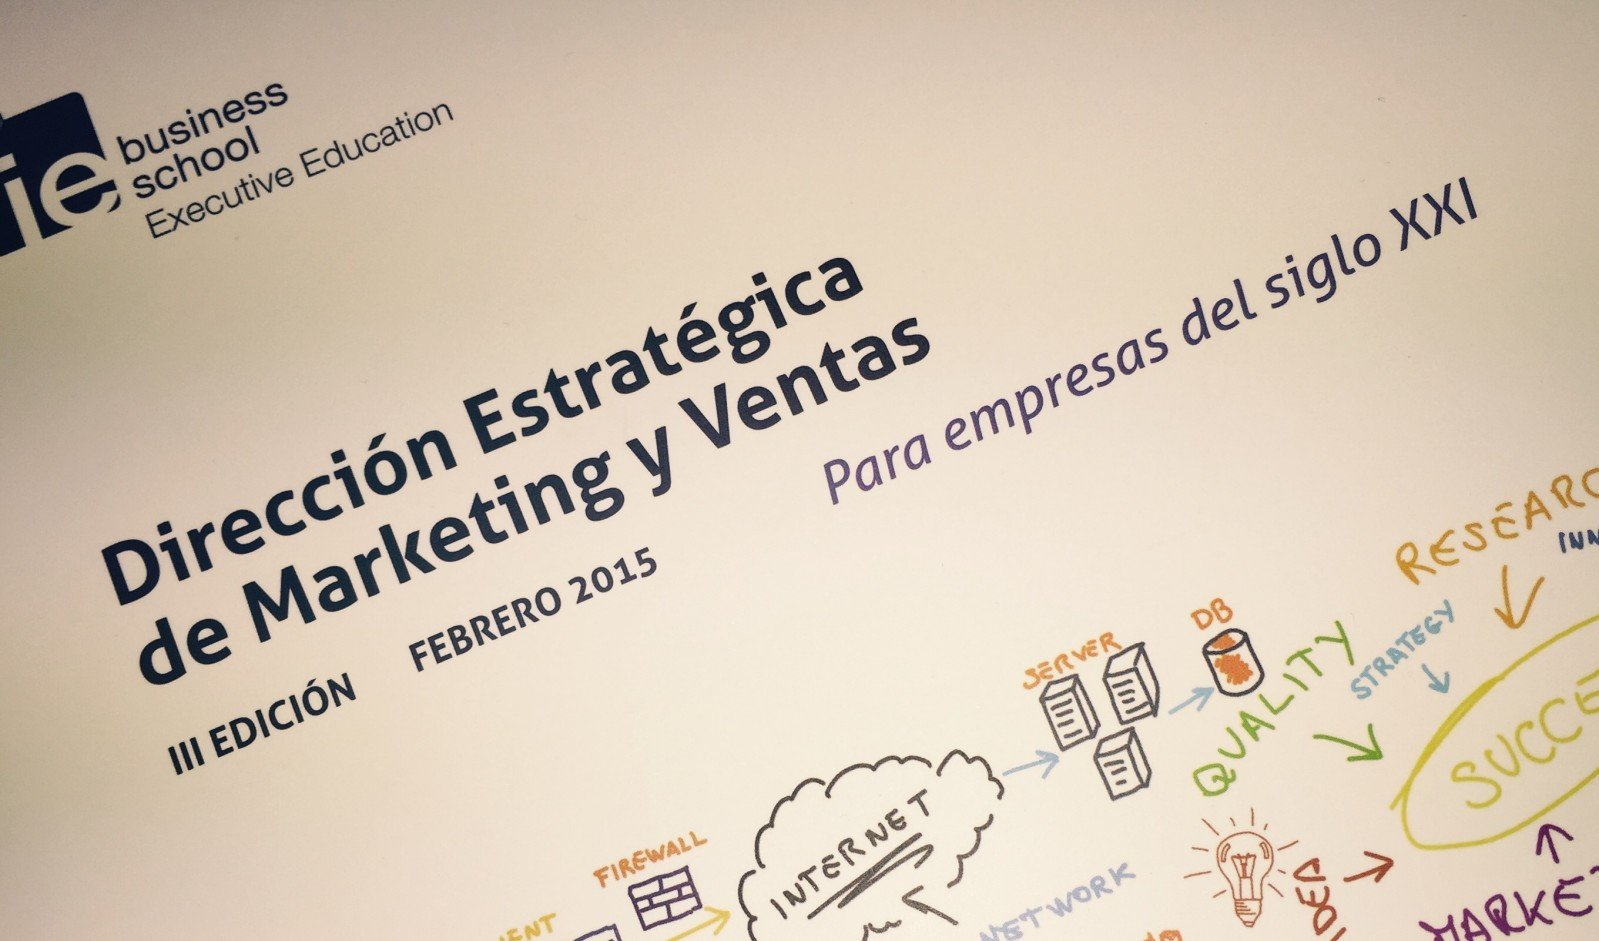 En febrero, nueva edición del Programa Superior de Marketing y Ventas del IE